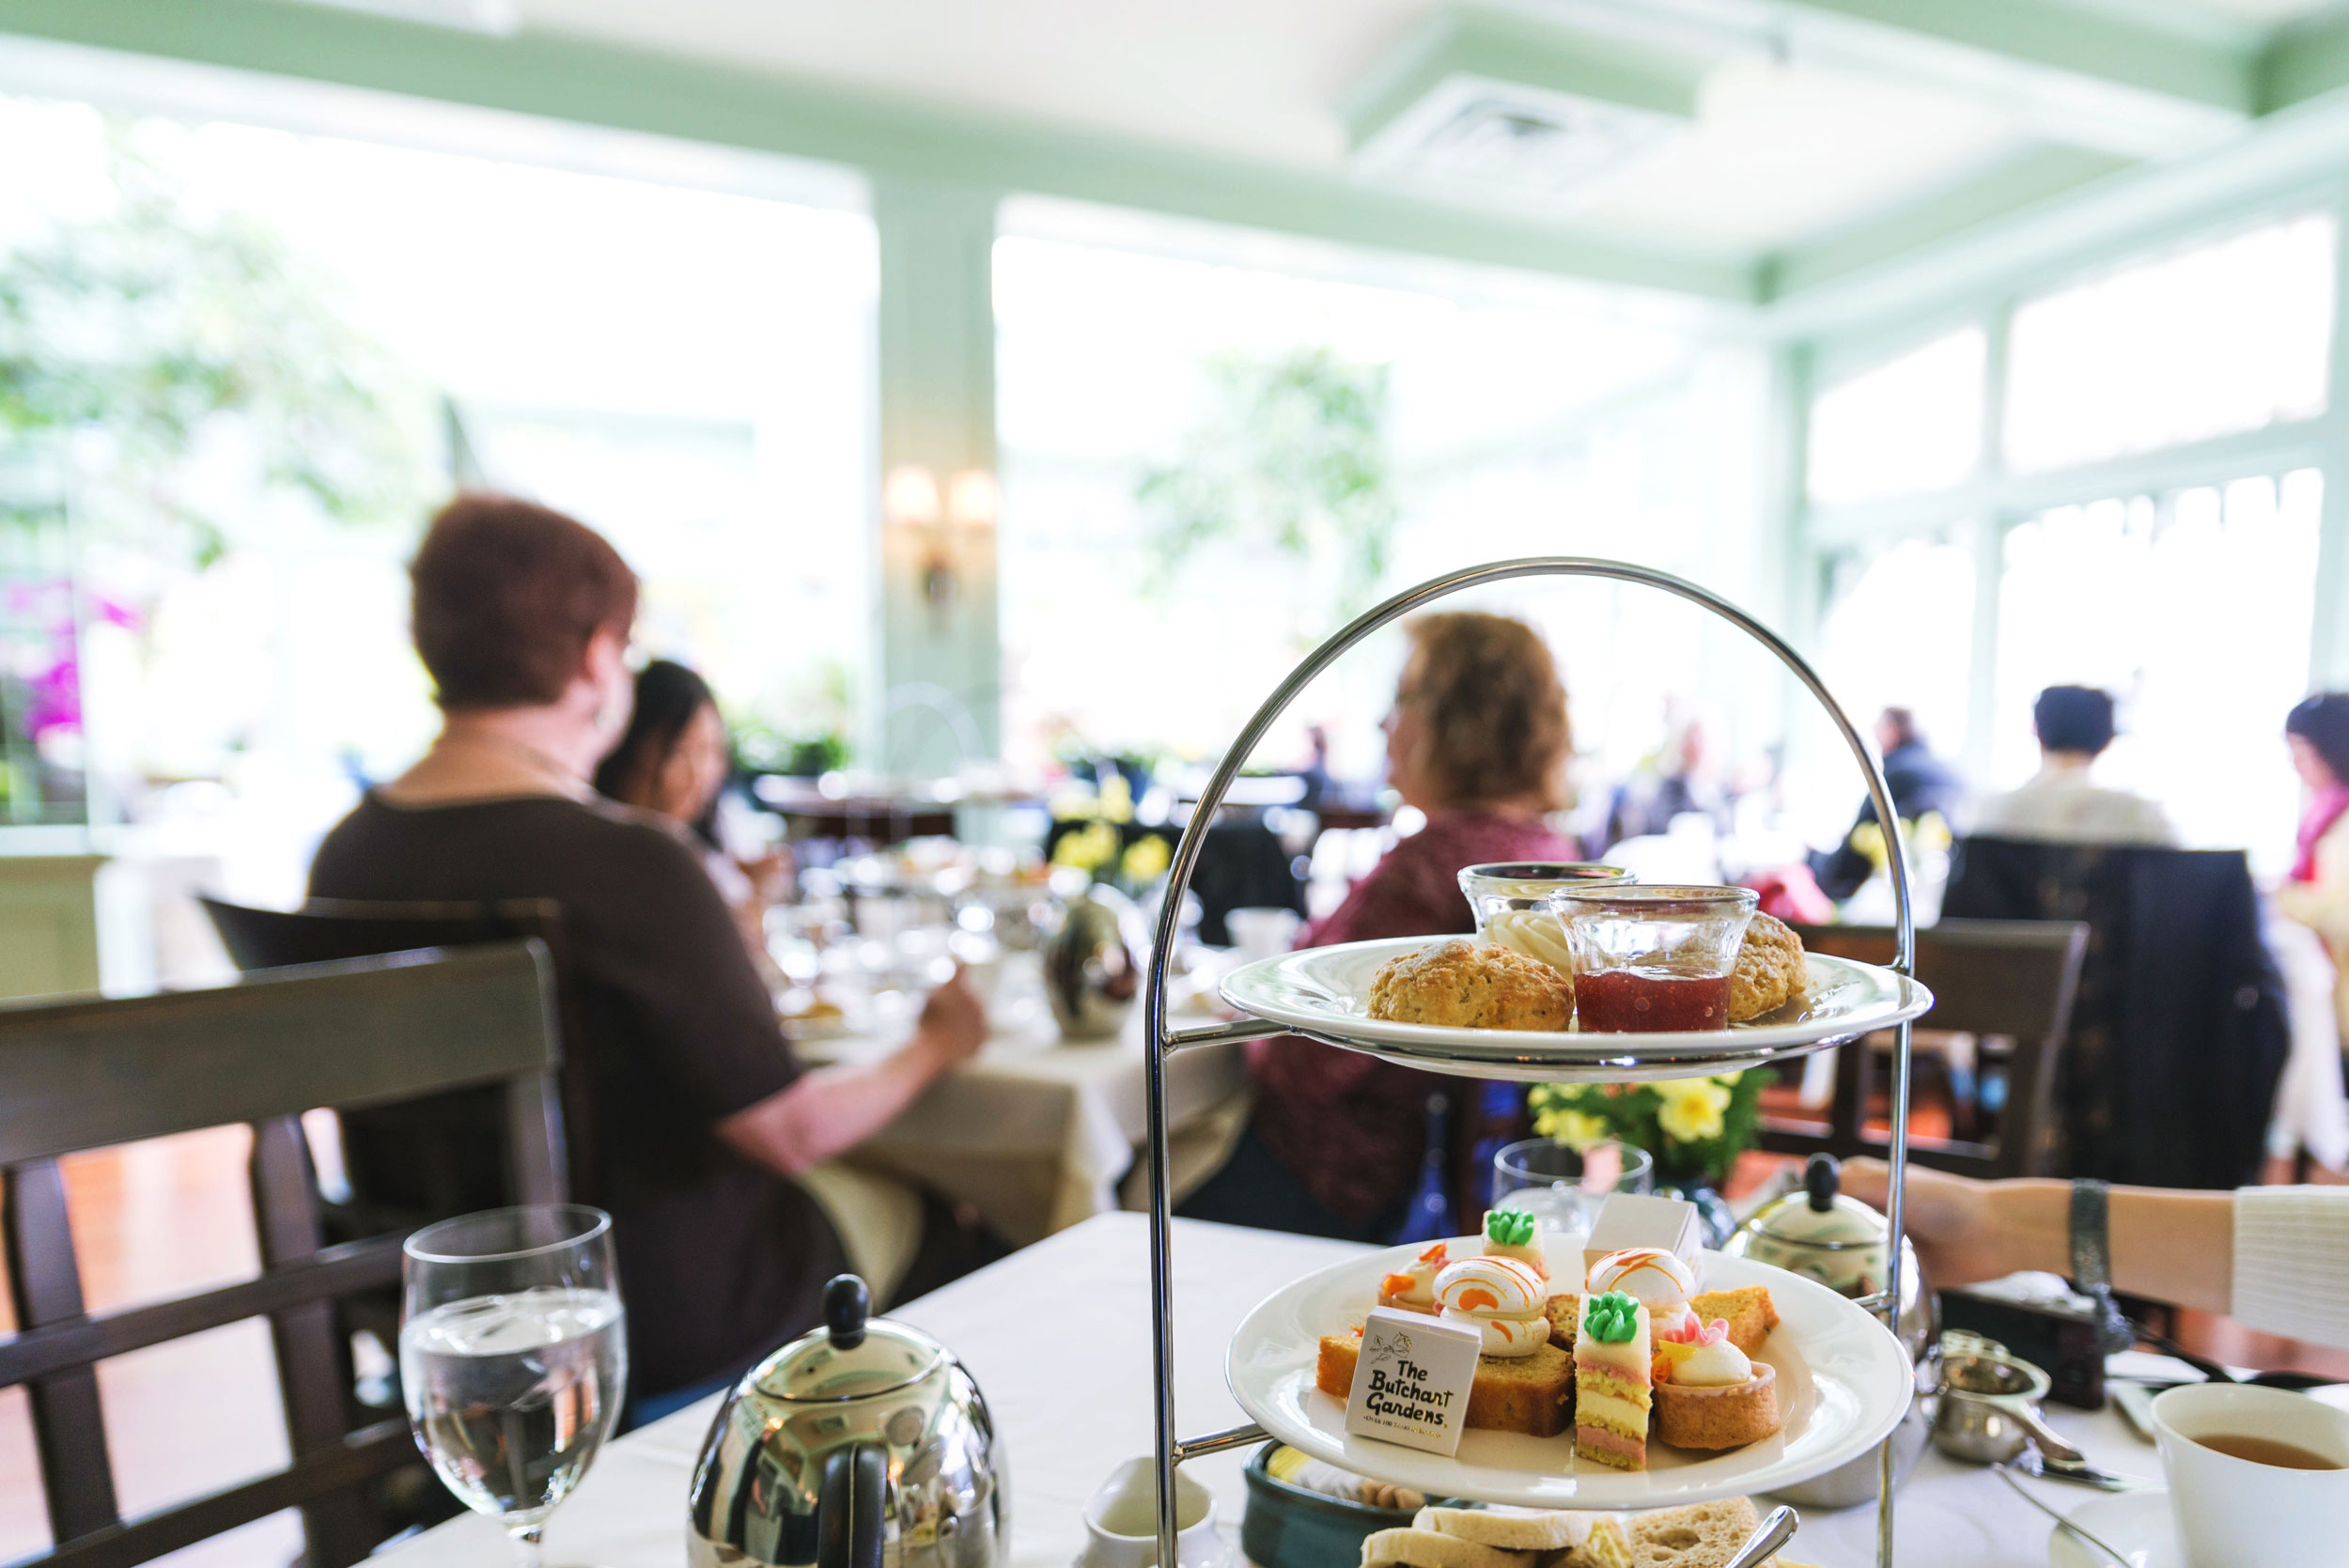 Afternoon tea at The Dining Room, Buchart Gardens